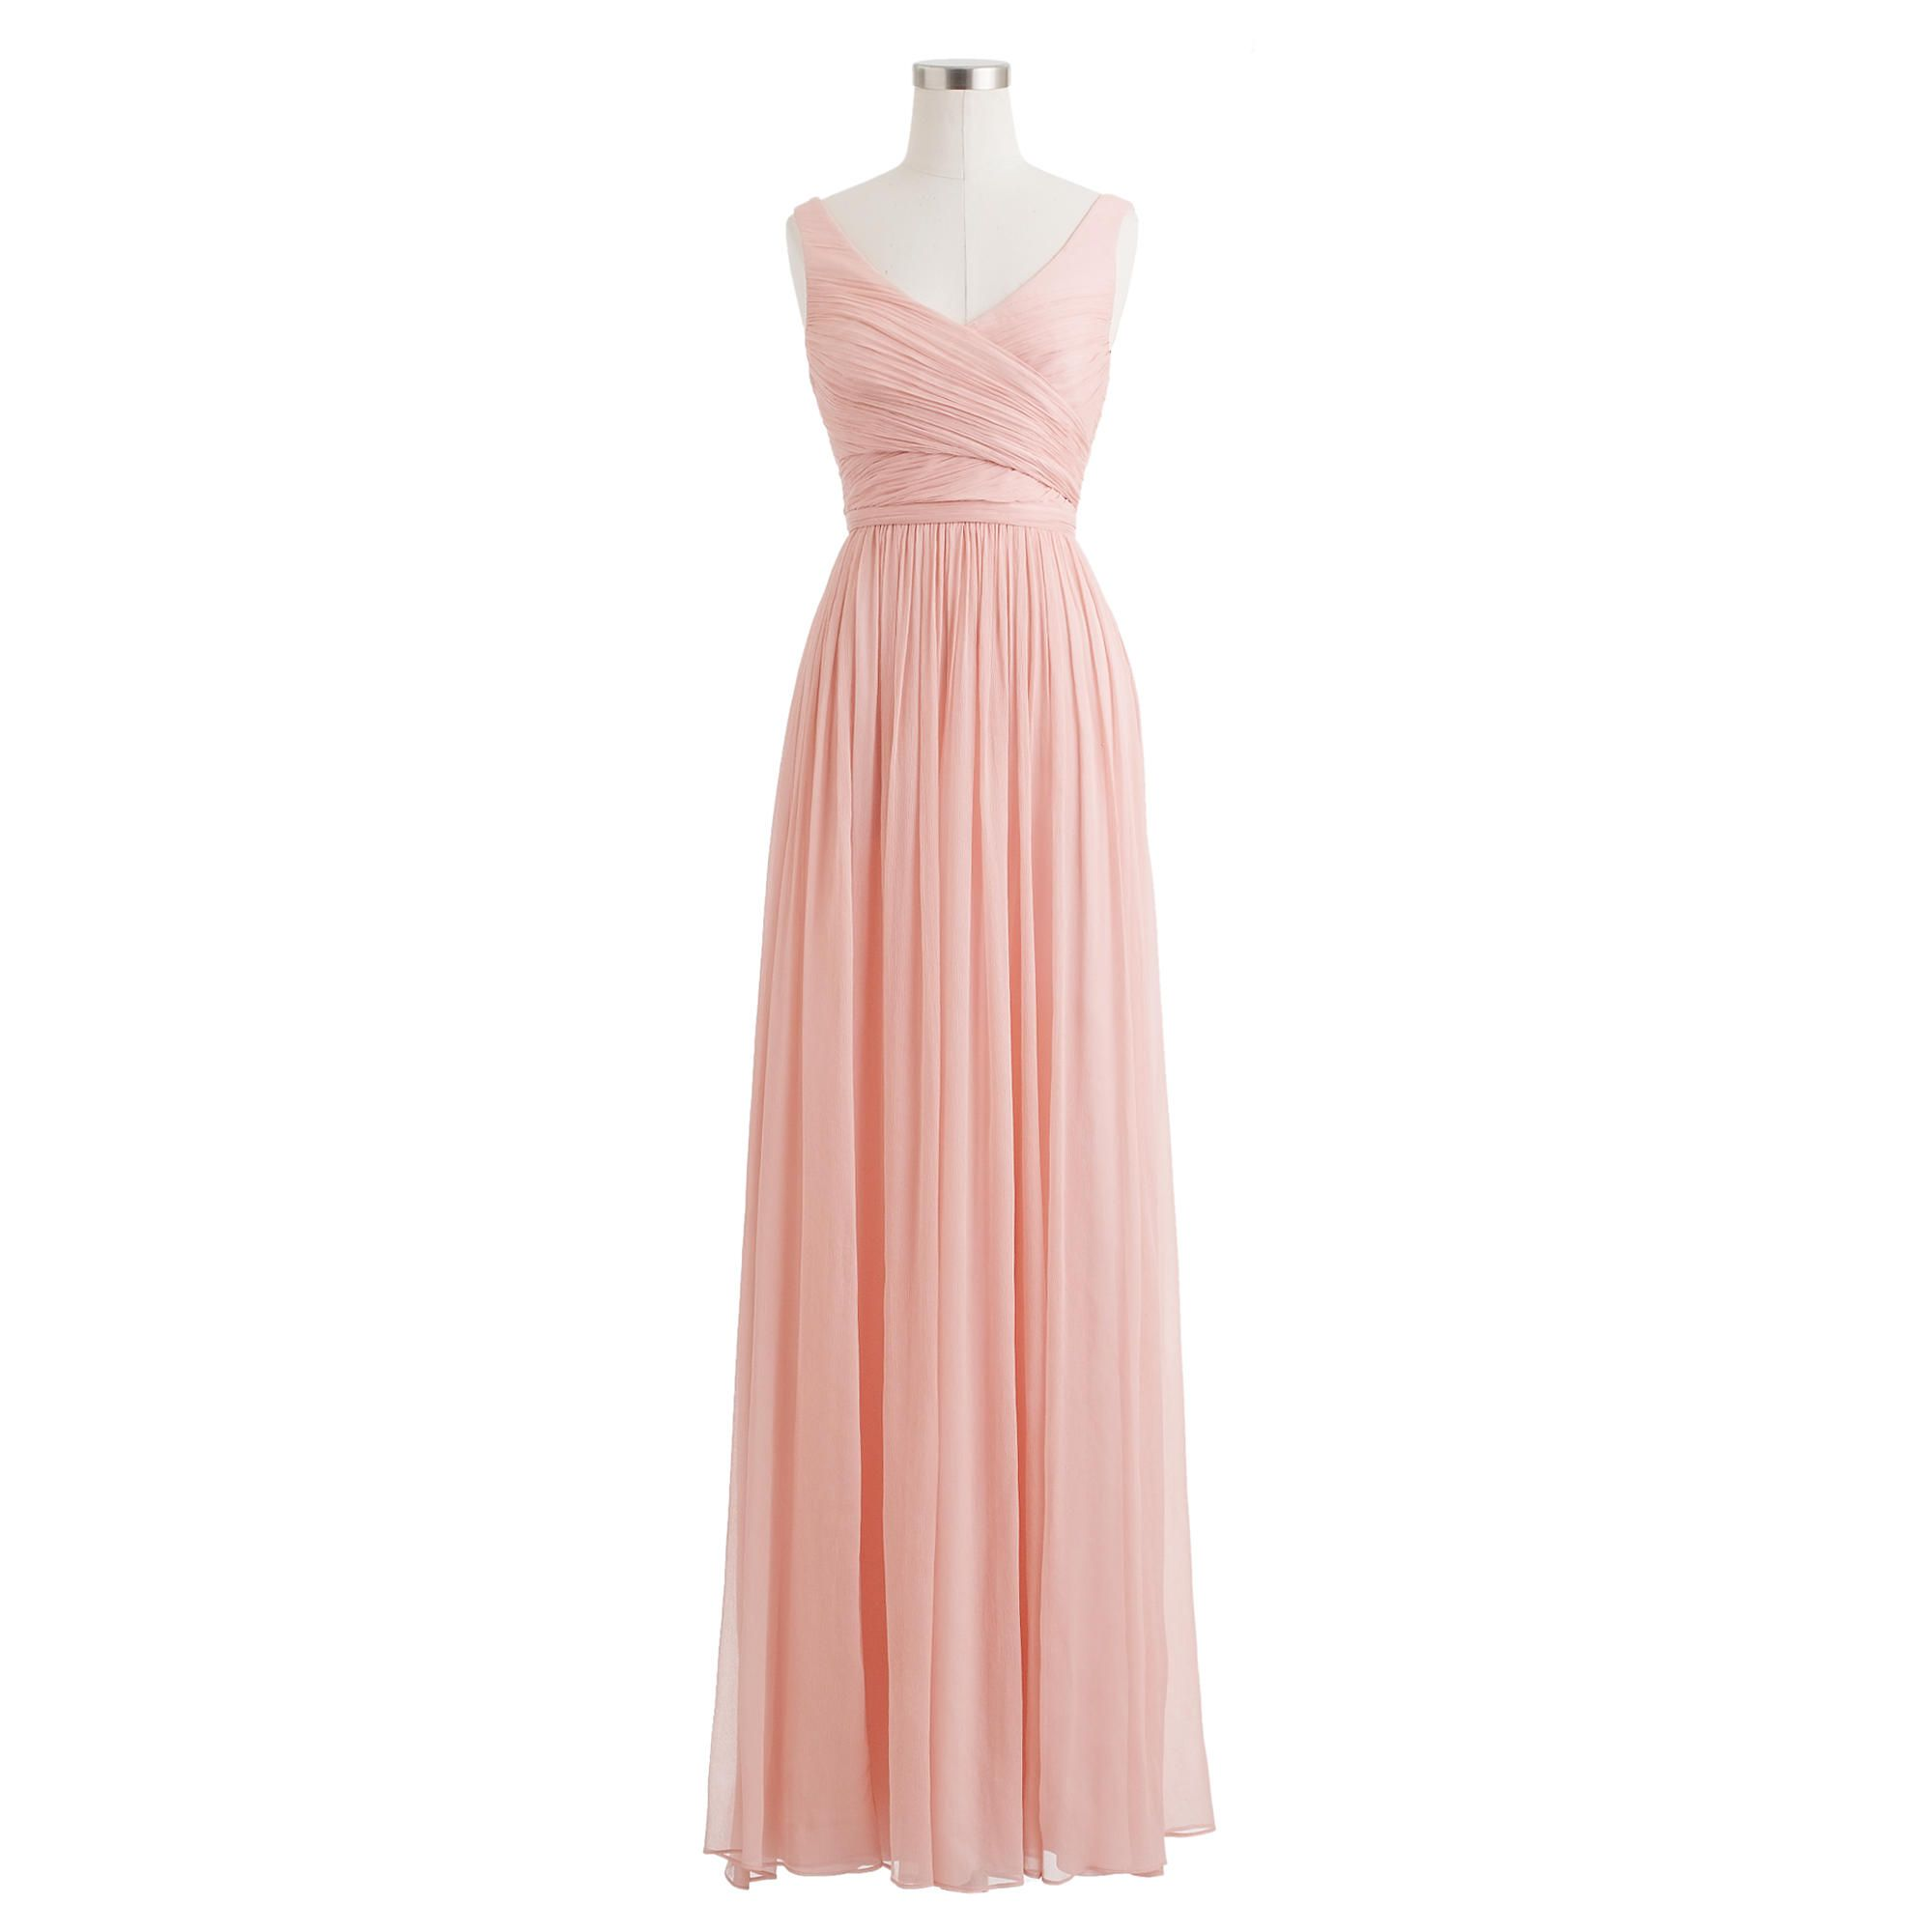 HEIDI LONG DRESS IN SILK CHIFFON. jcrew. Color: Misty Rose. Price ...